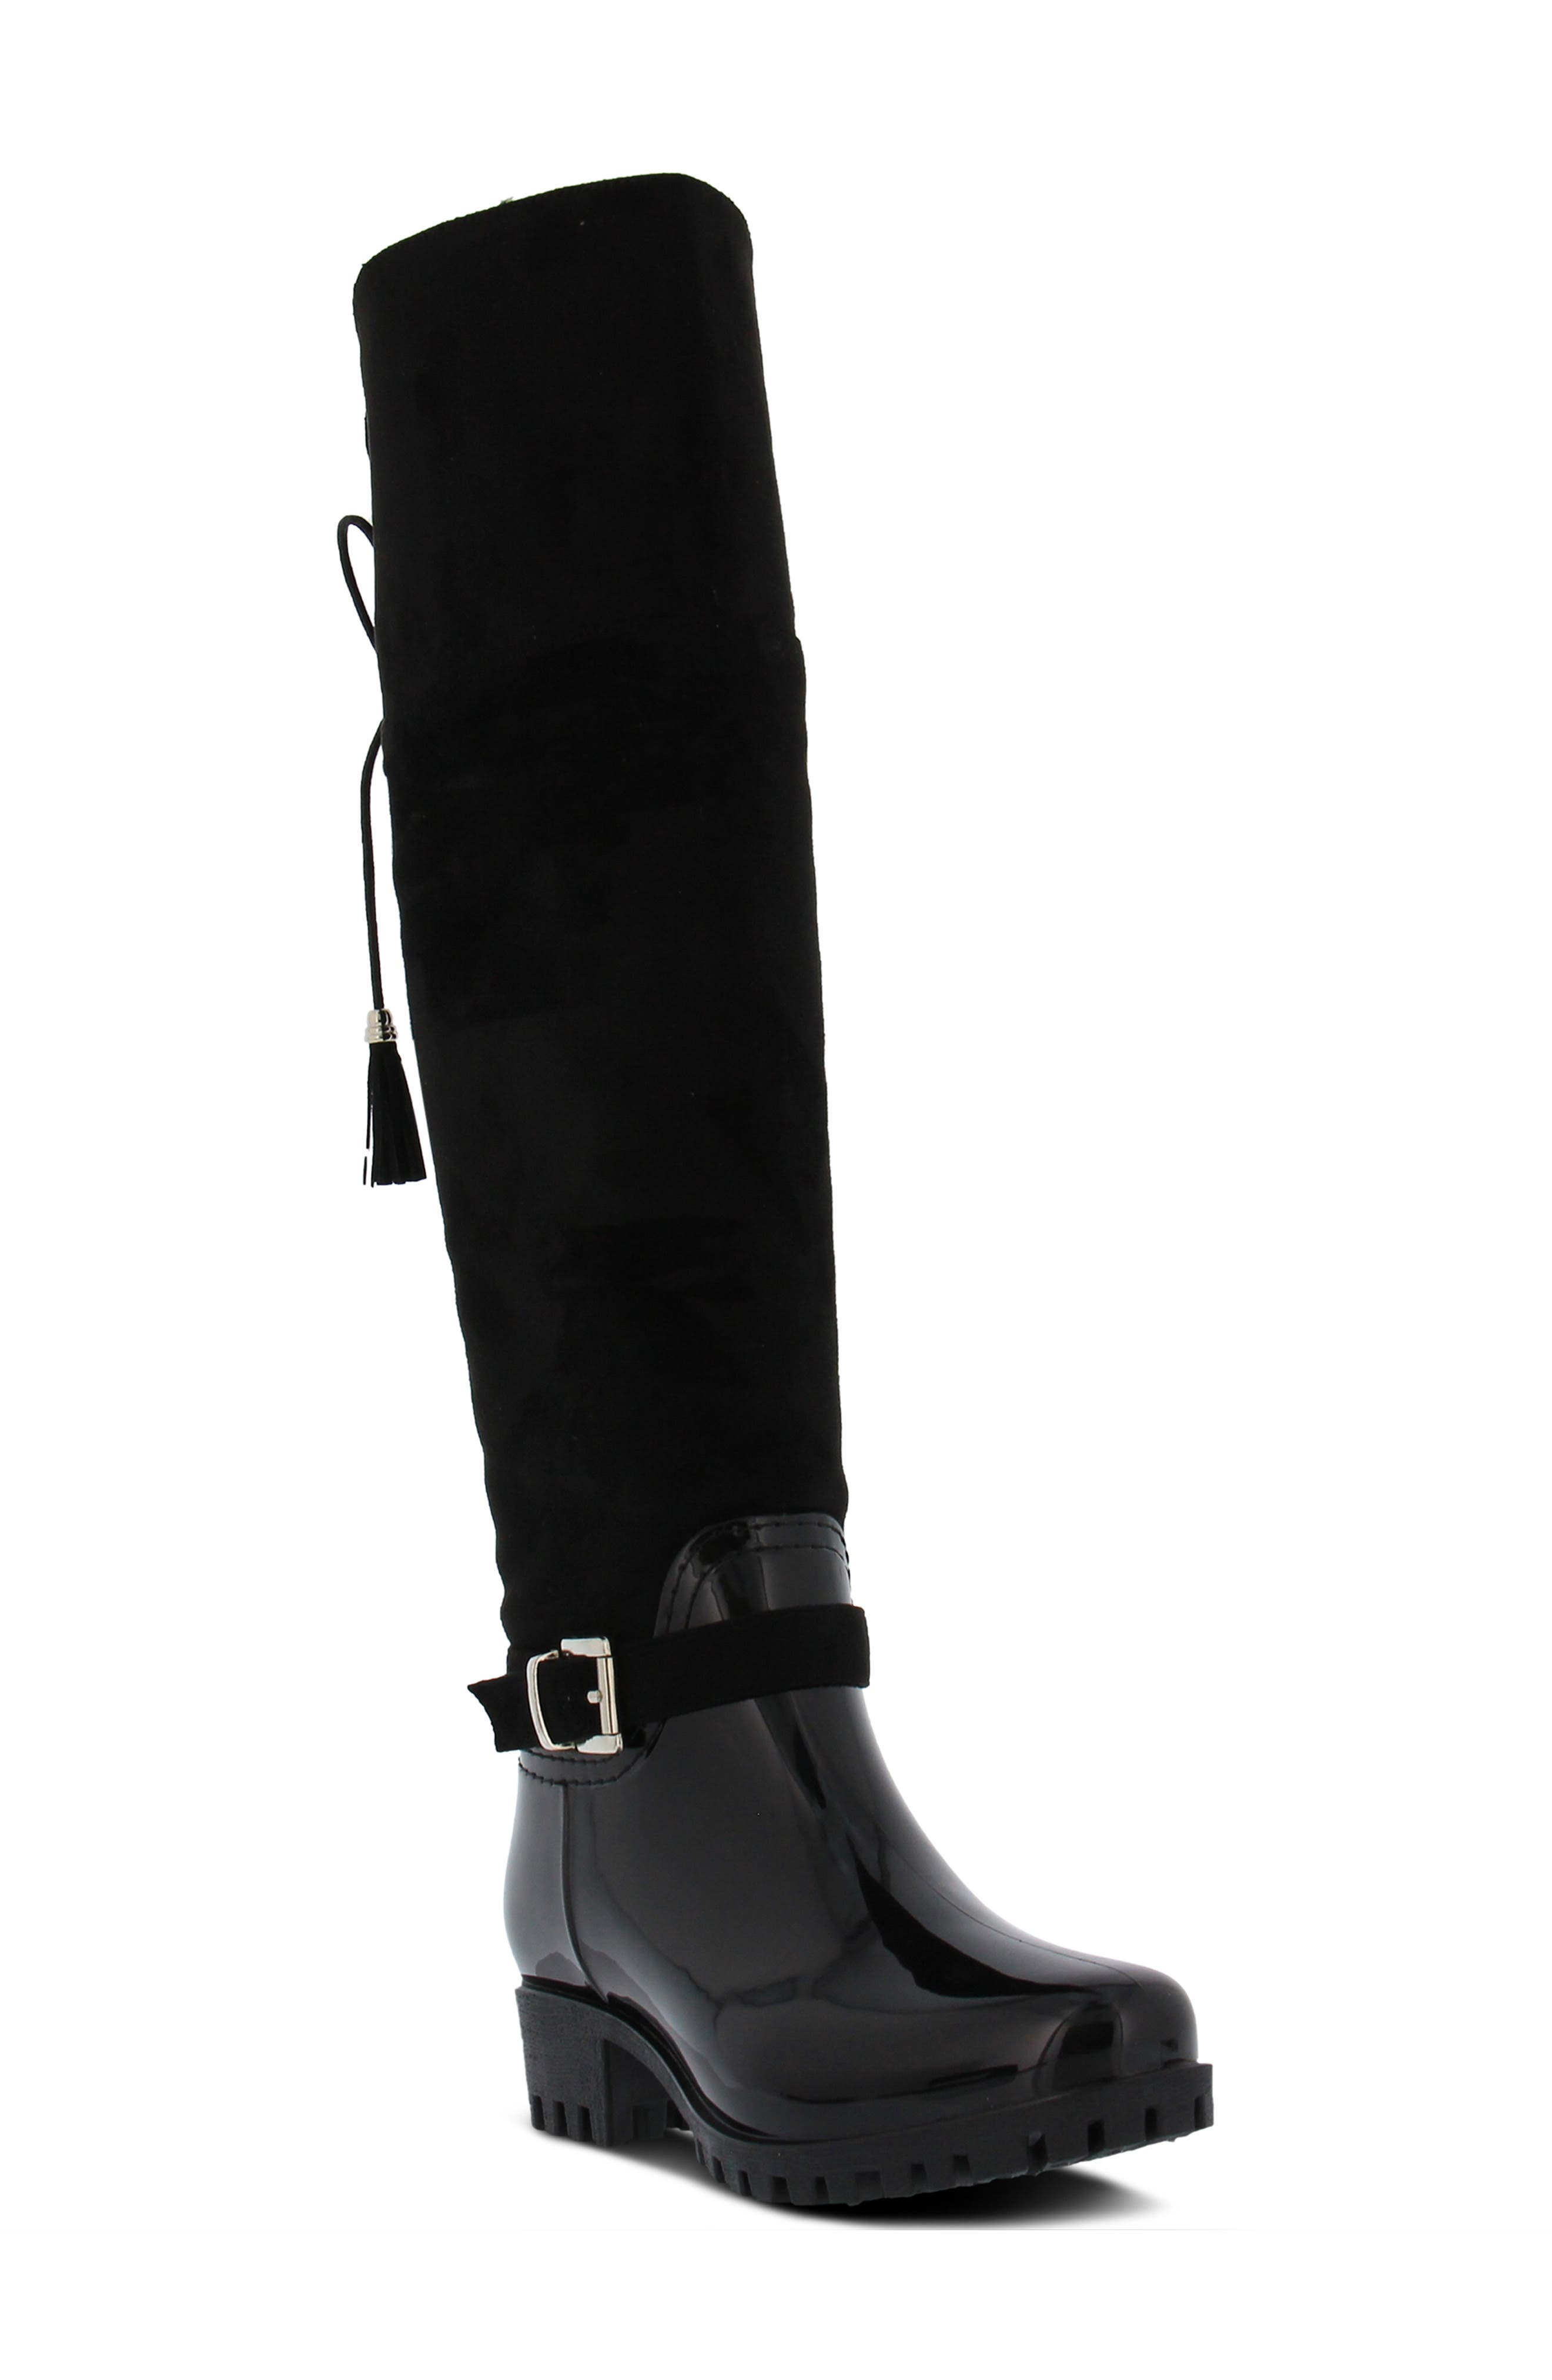 Spring Step Mattie Over The Knee Waterproof Boot - Black